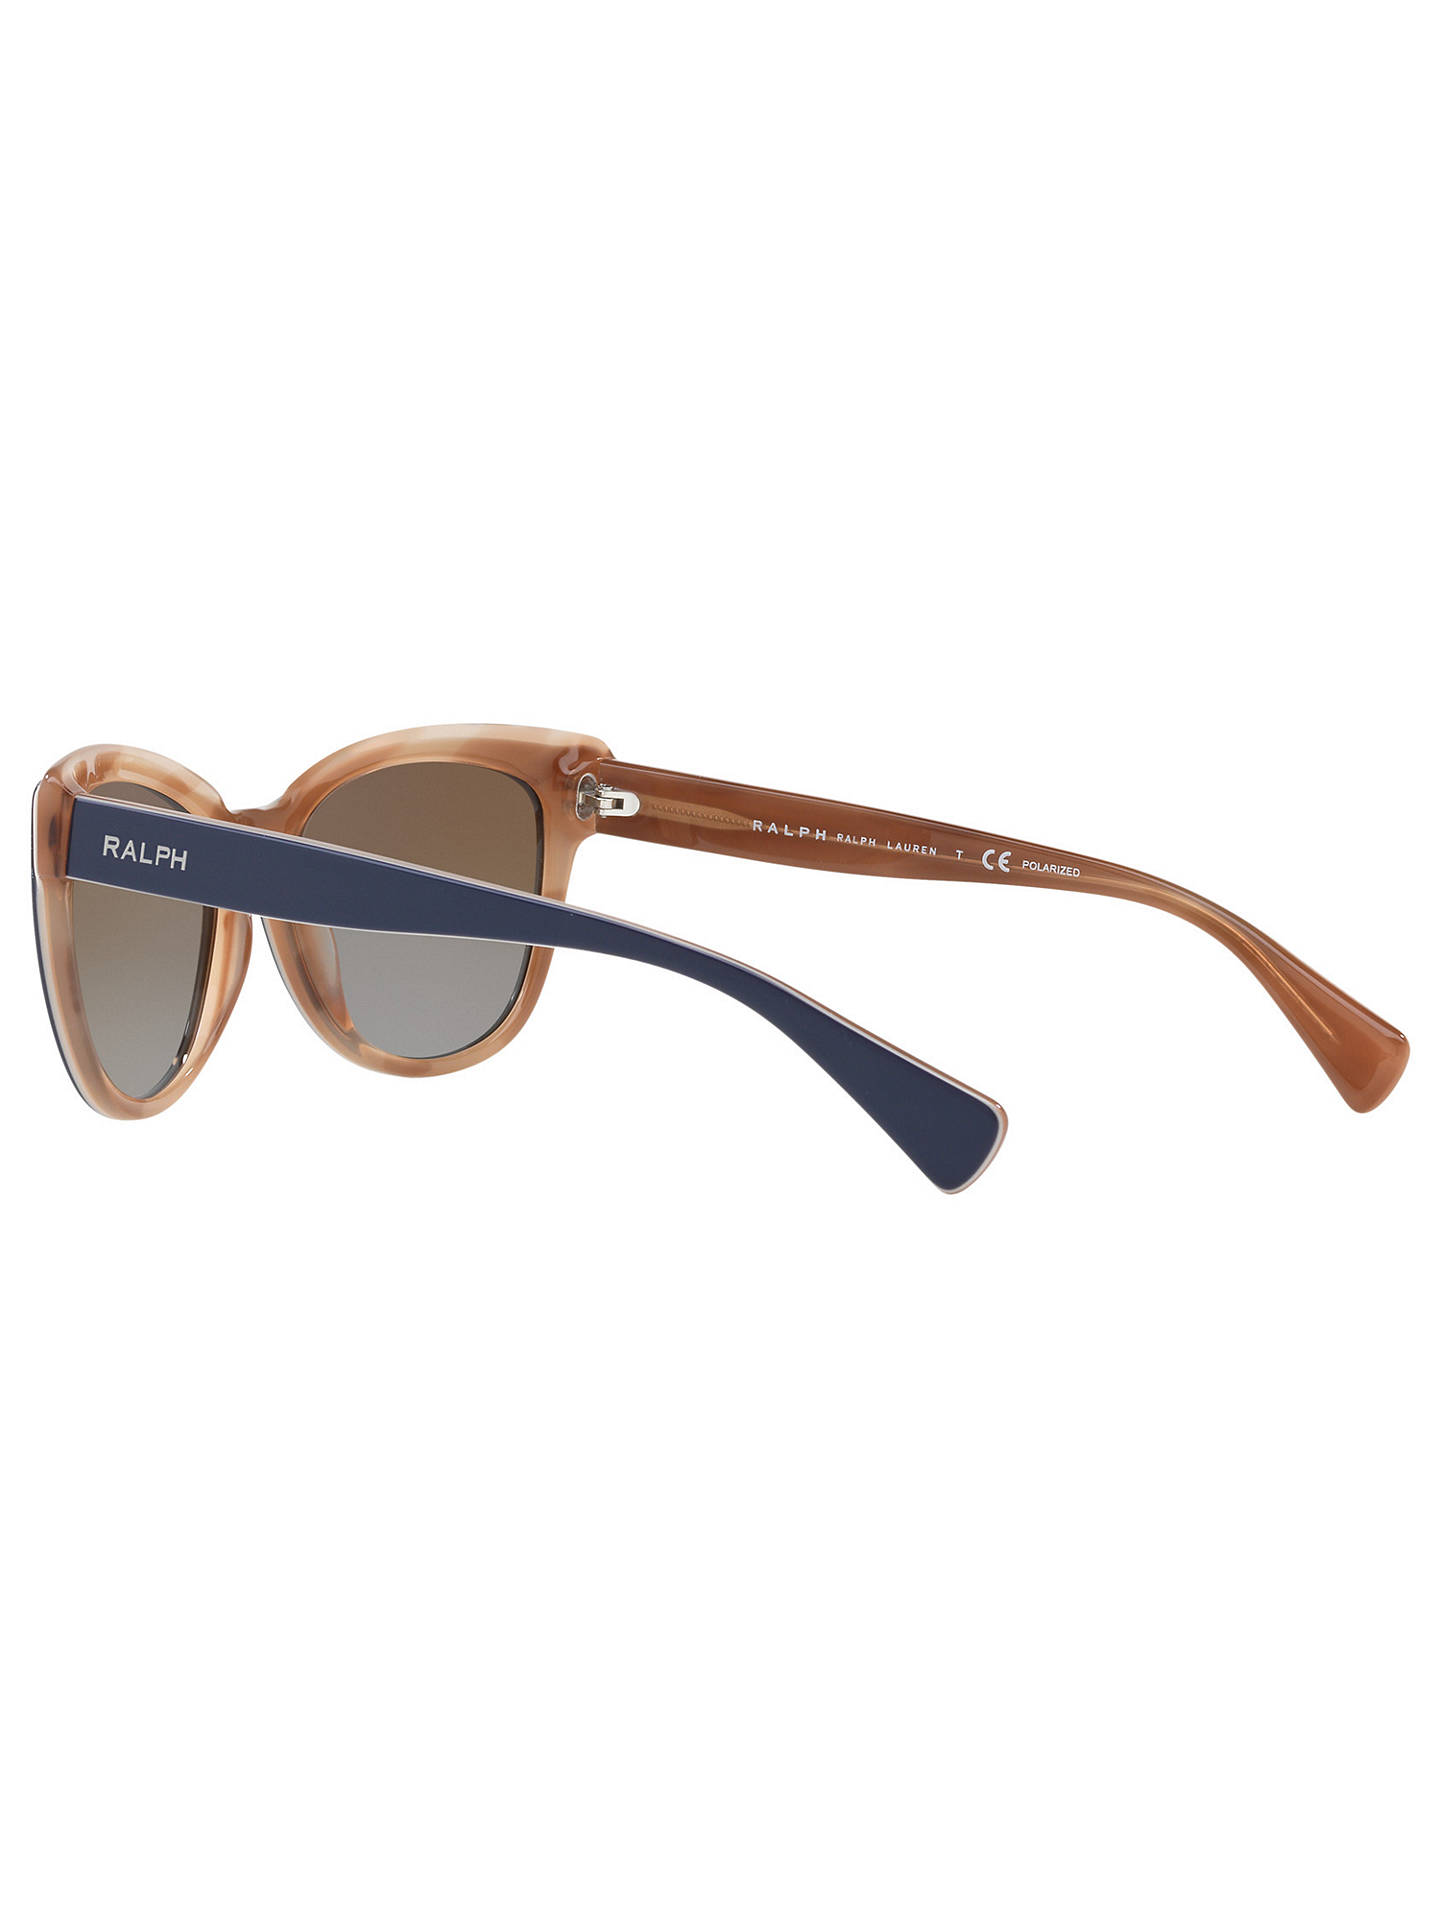 Buy Ralph RA5230 Women's Cat's Eye Sunglasses, Brown/Gold Online at johnlewis.com